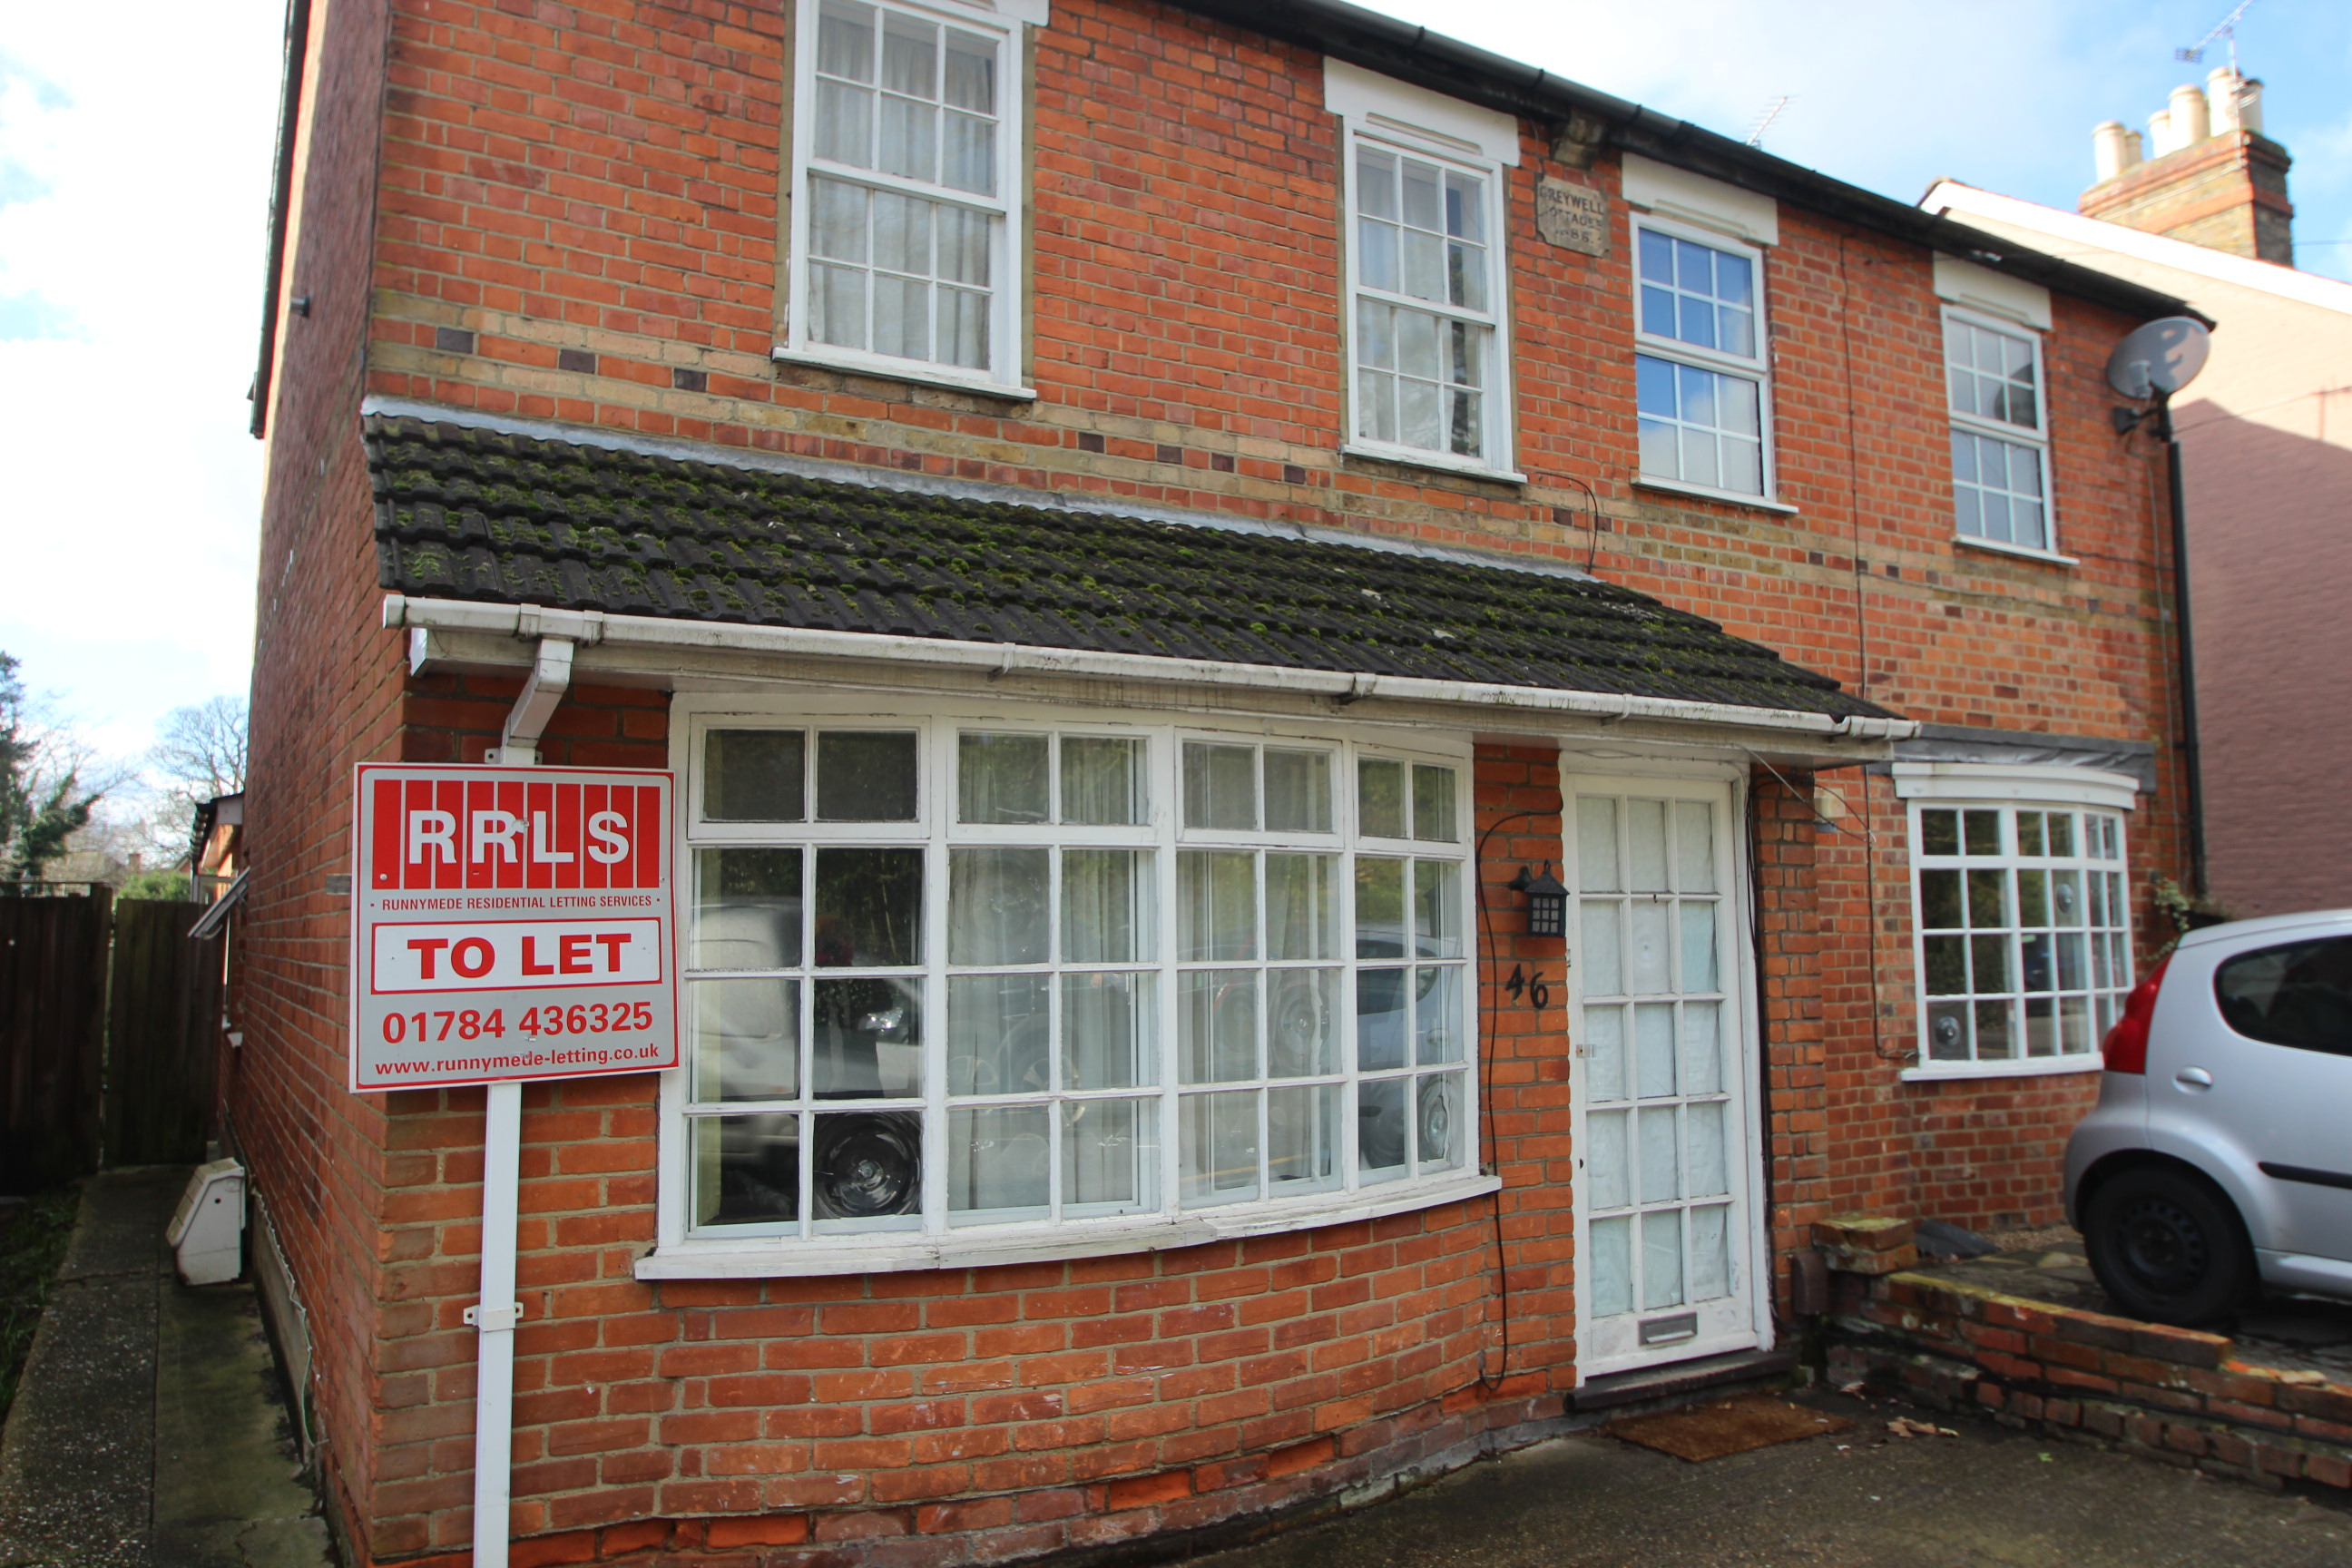 5 Bedroom Semi-Detached STUDENT PROPERTY, Englefield Green [STUDENTS ONLY]